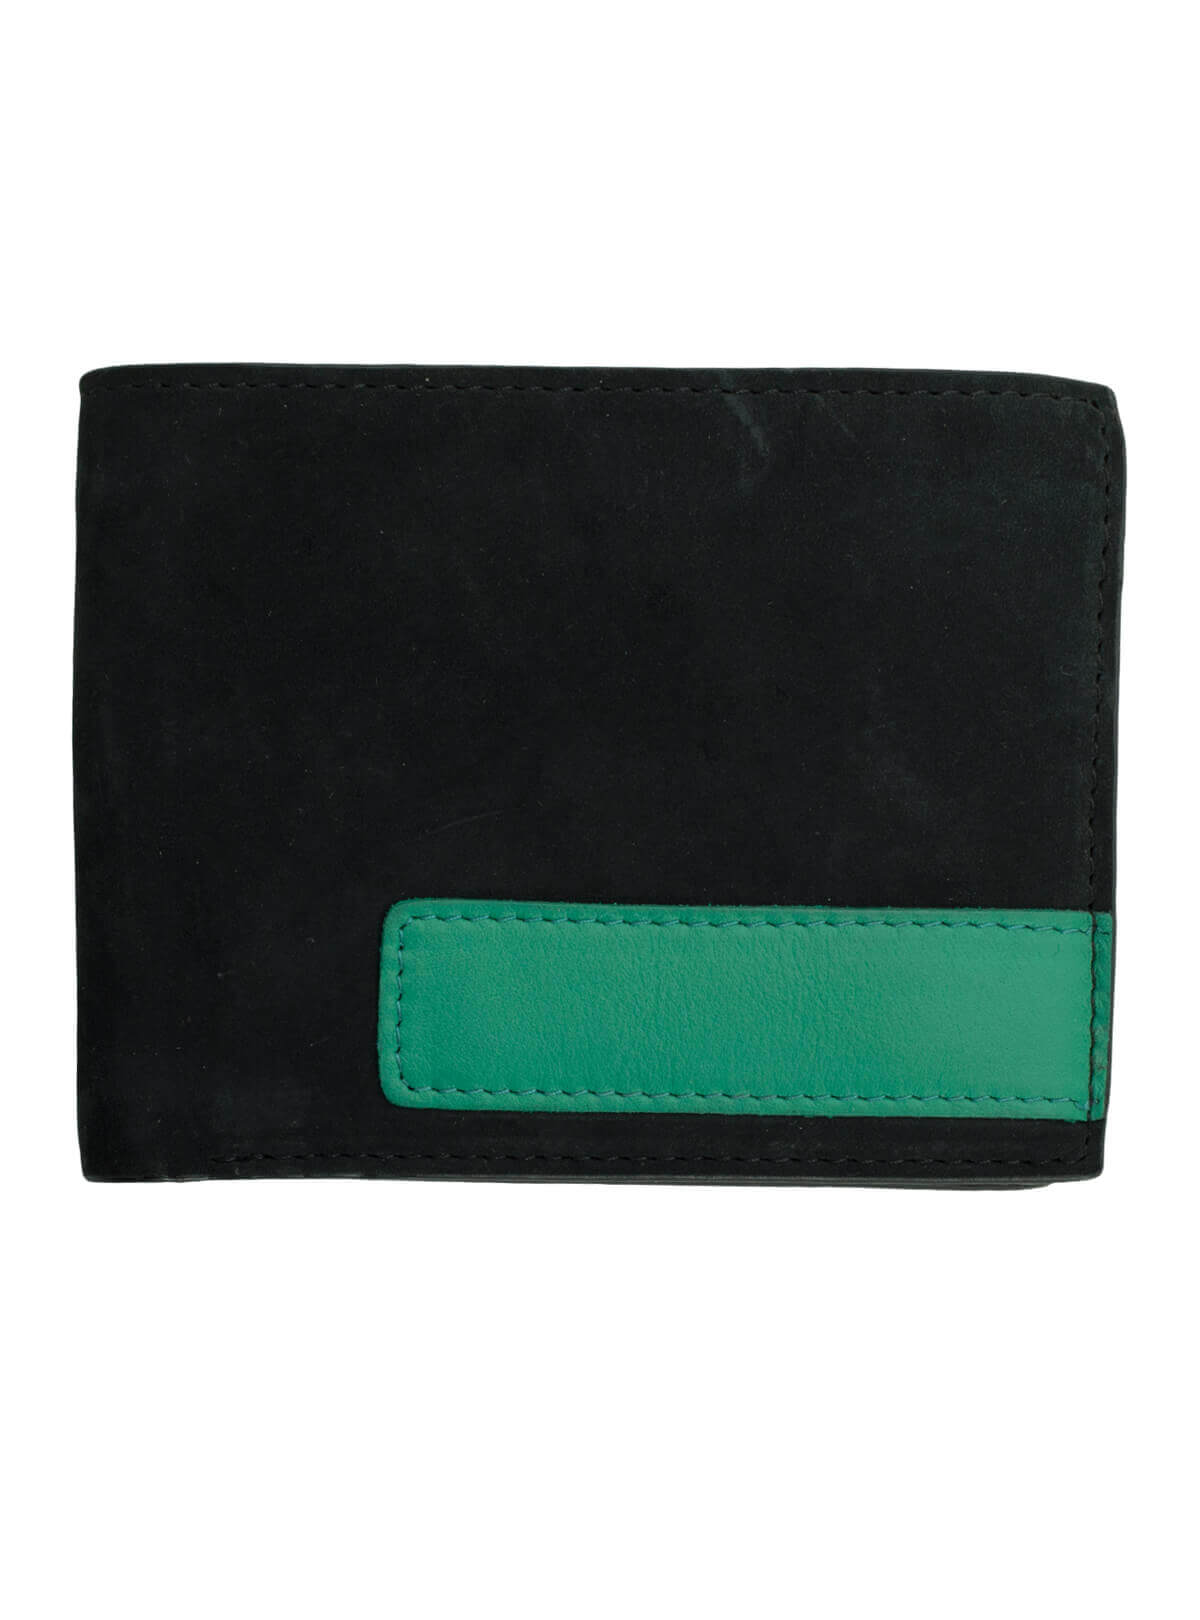 Men's Two Tone Leather Bi-Fold Wallet Extra Capacity Casual Slim Thin For Travel